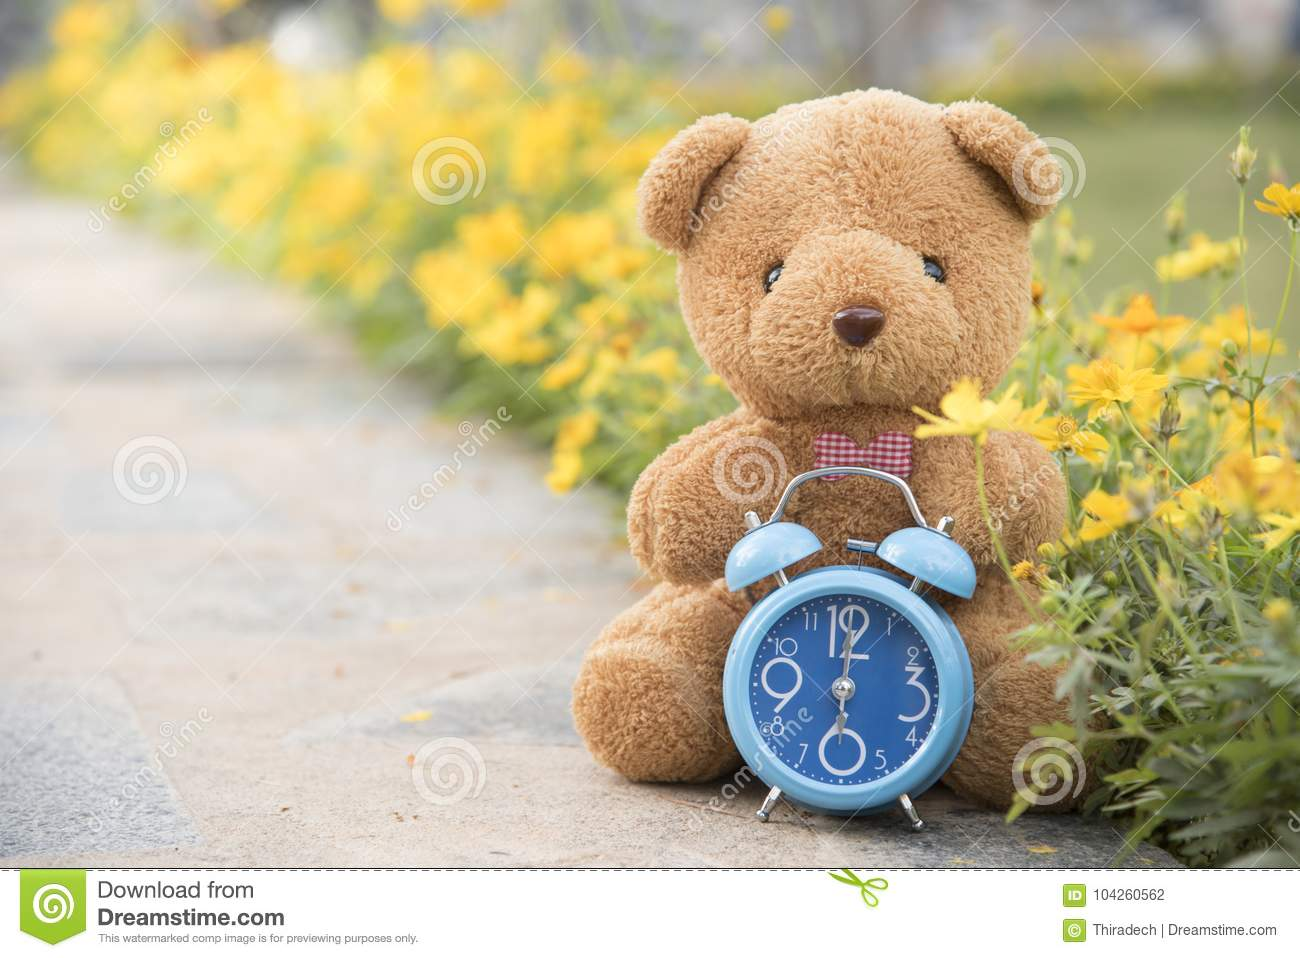 teddy bear with blue clock on backdrop stock photo - image of